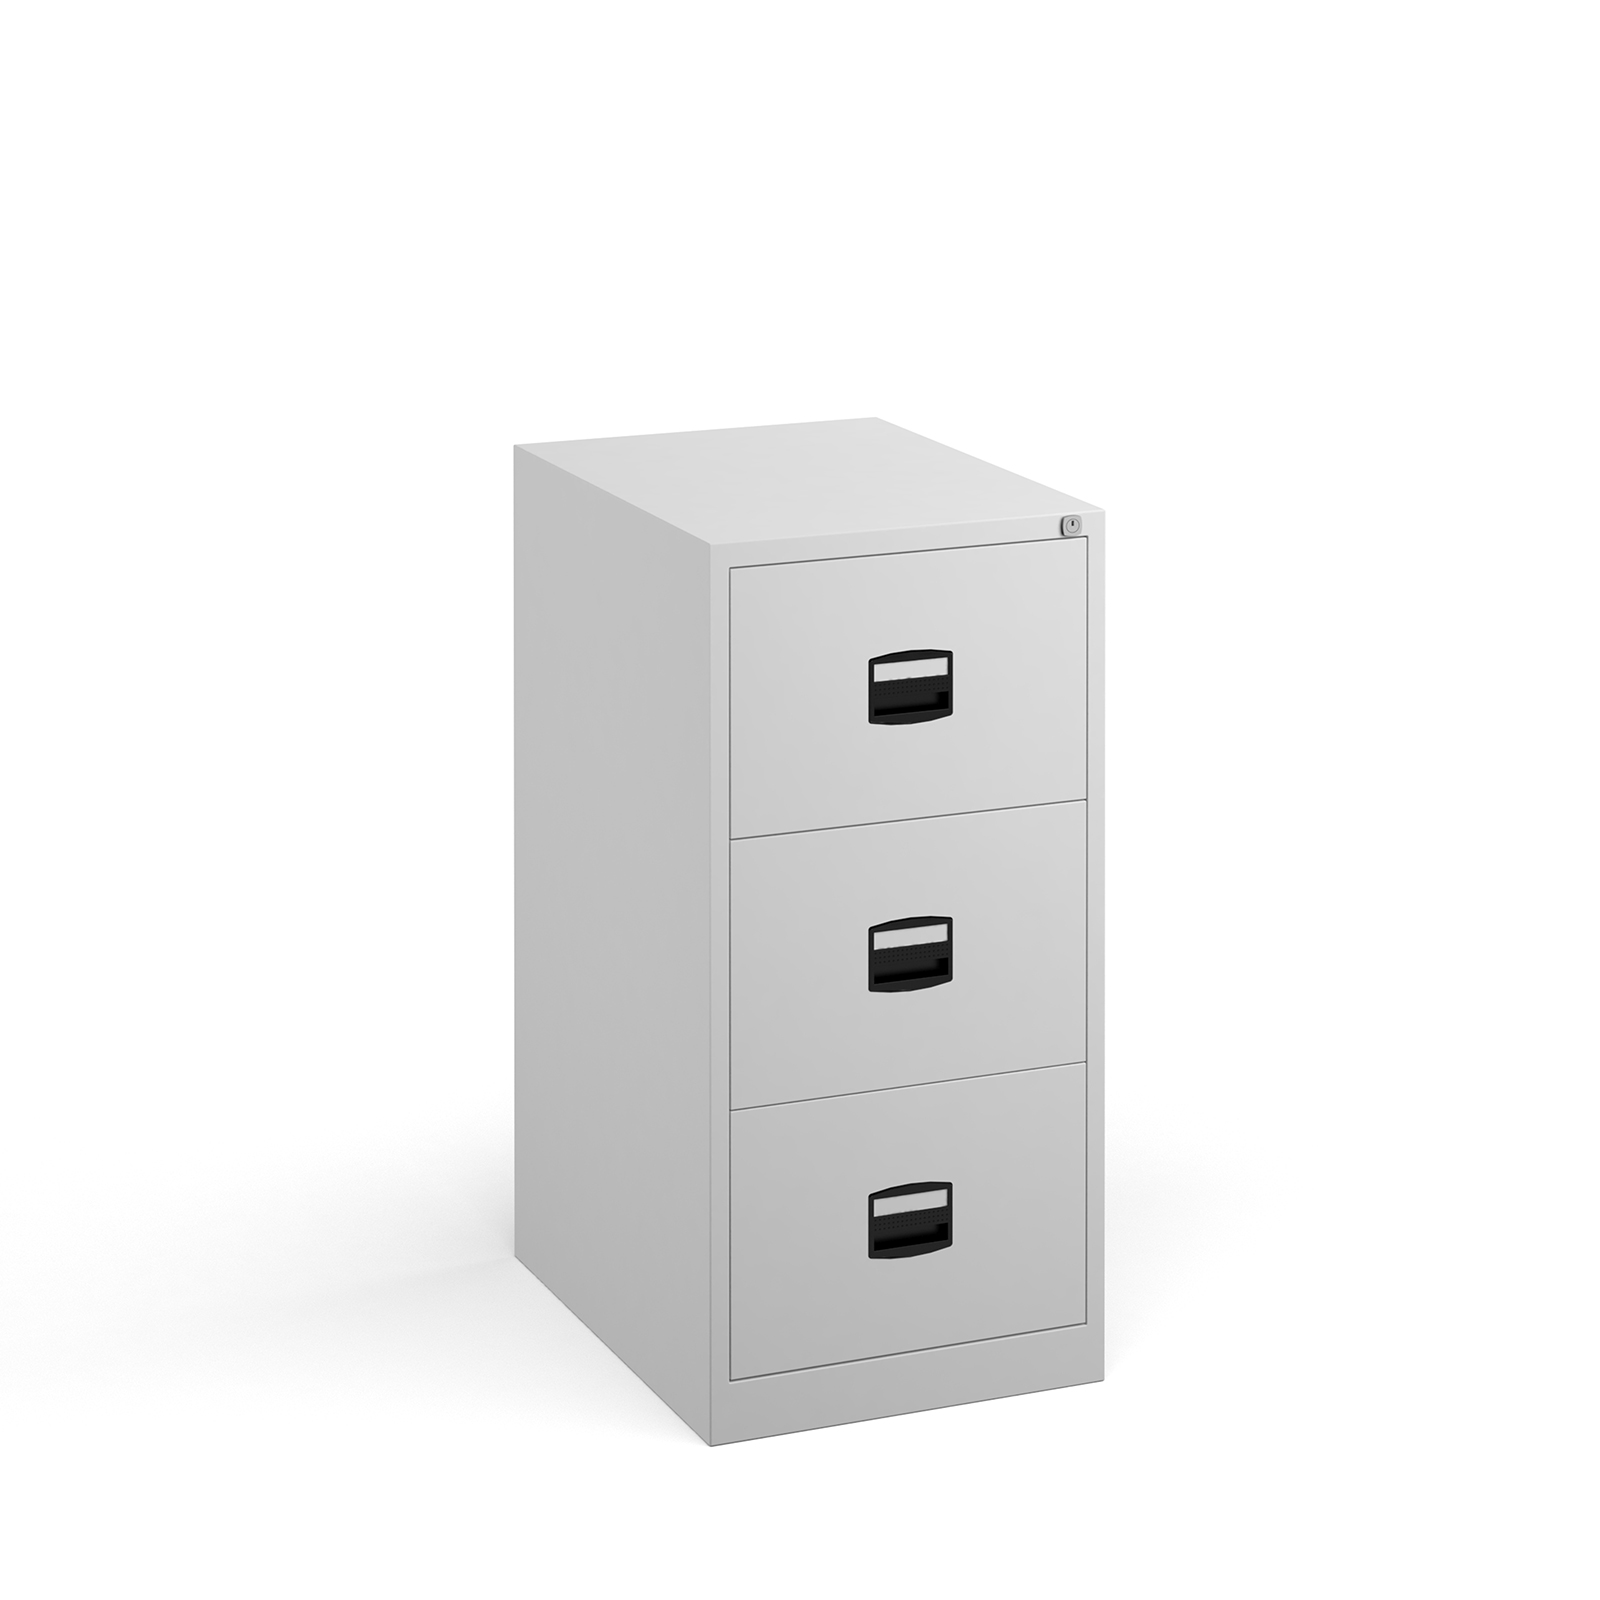 Steel Steel 3 drawer contract filing cabinet 1016mm high - white